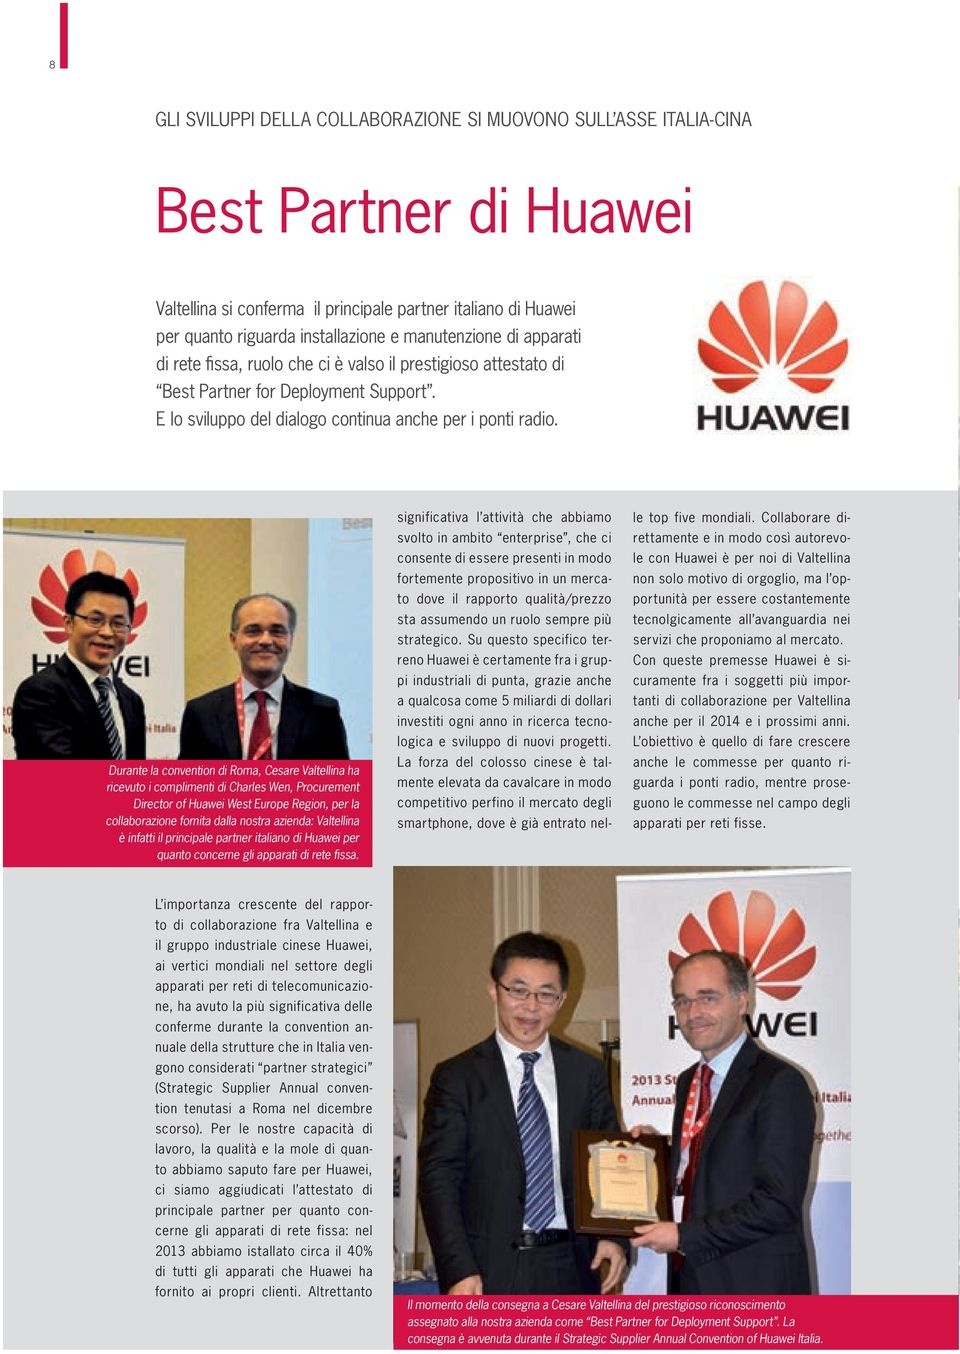 Durante la convention di Roma, Cesare Valtellina ha ricevuto i complimenti di Charles Wen, Procurement Director of Huawei West Europe Region, per la collaborazione fornita dalla nostra azienda: